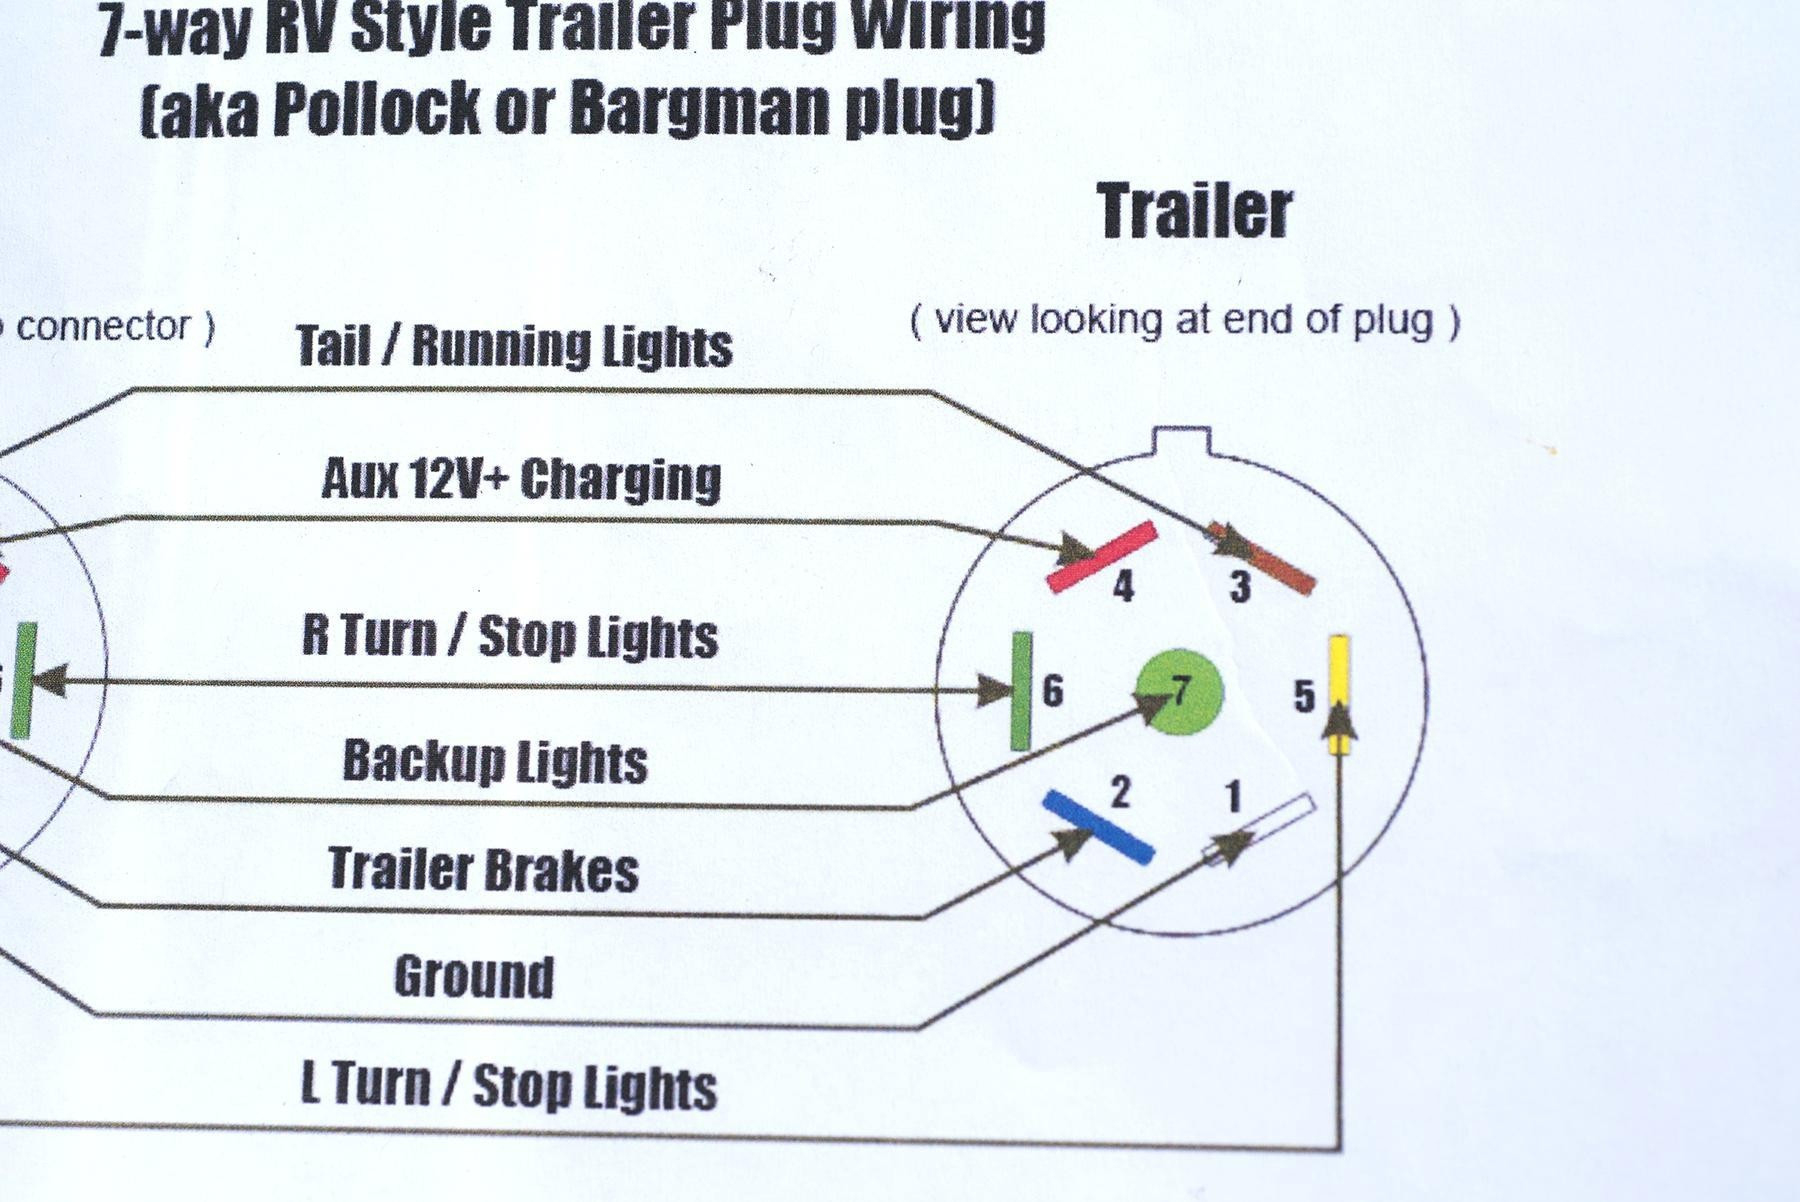 Phillips 7 Pin Trailer Connector Wiring Diagram - Wiring Data Diagram - Wiring Diagram Trailer Plug 7 Pin